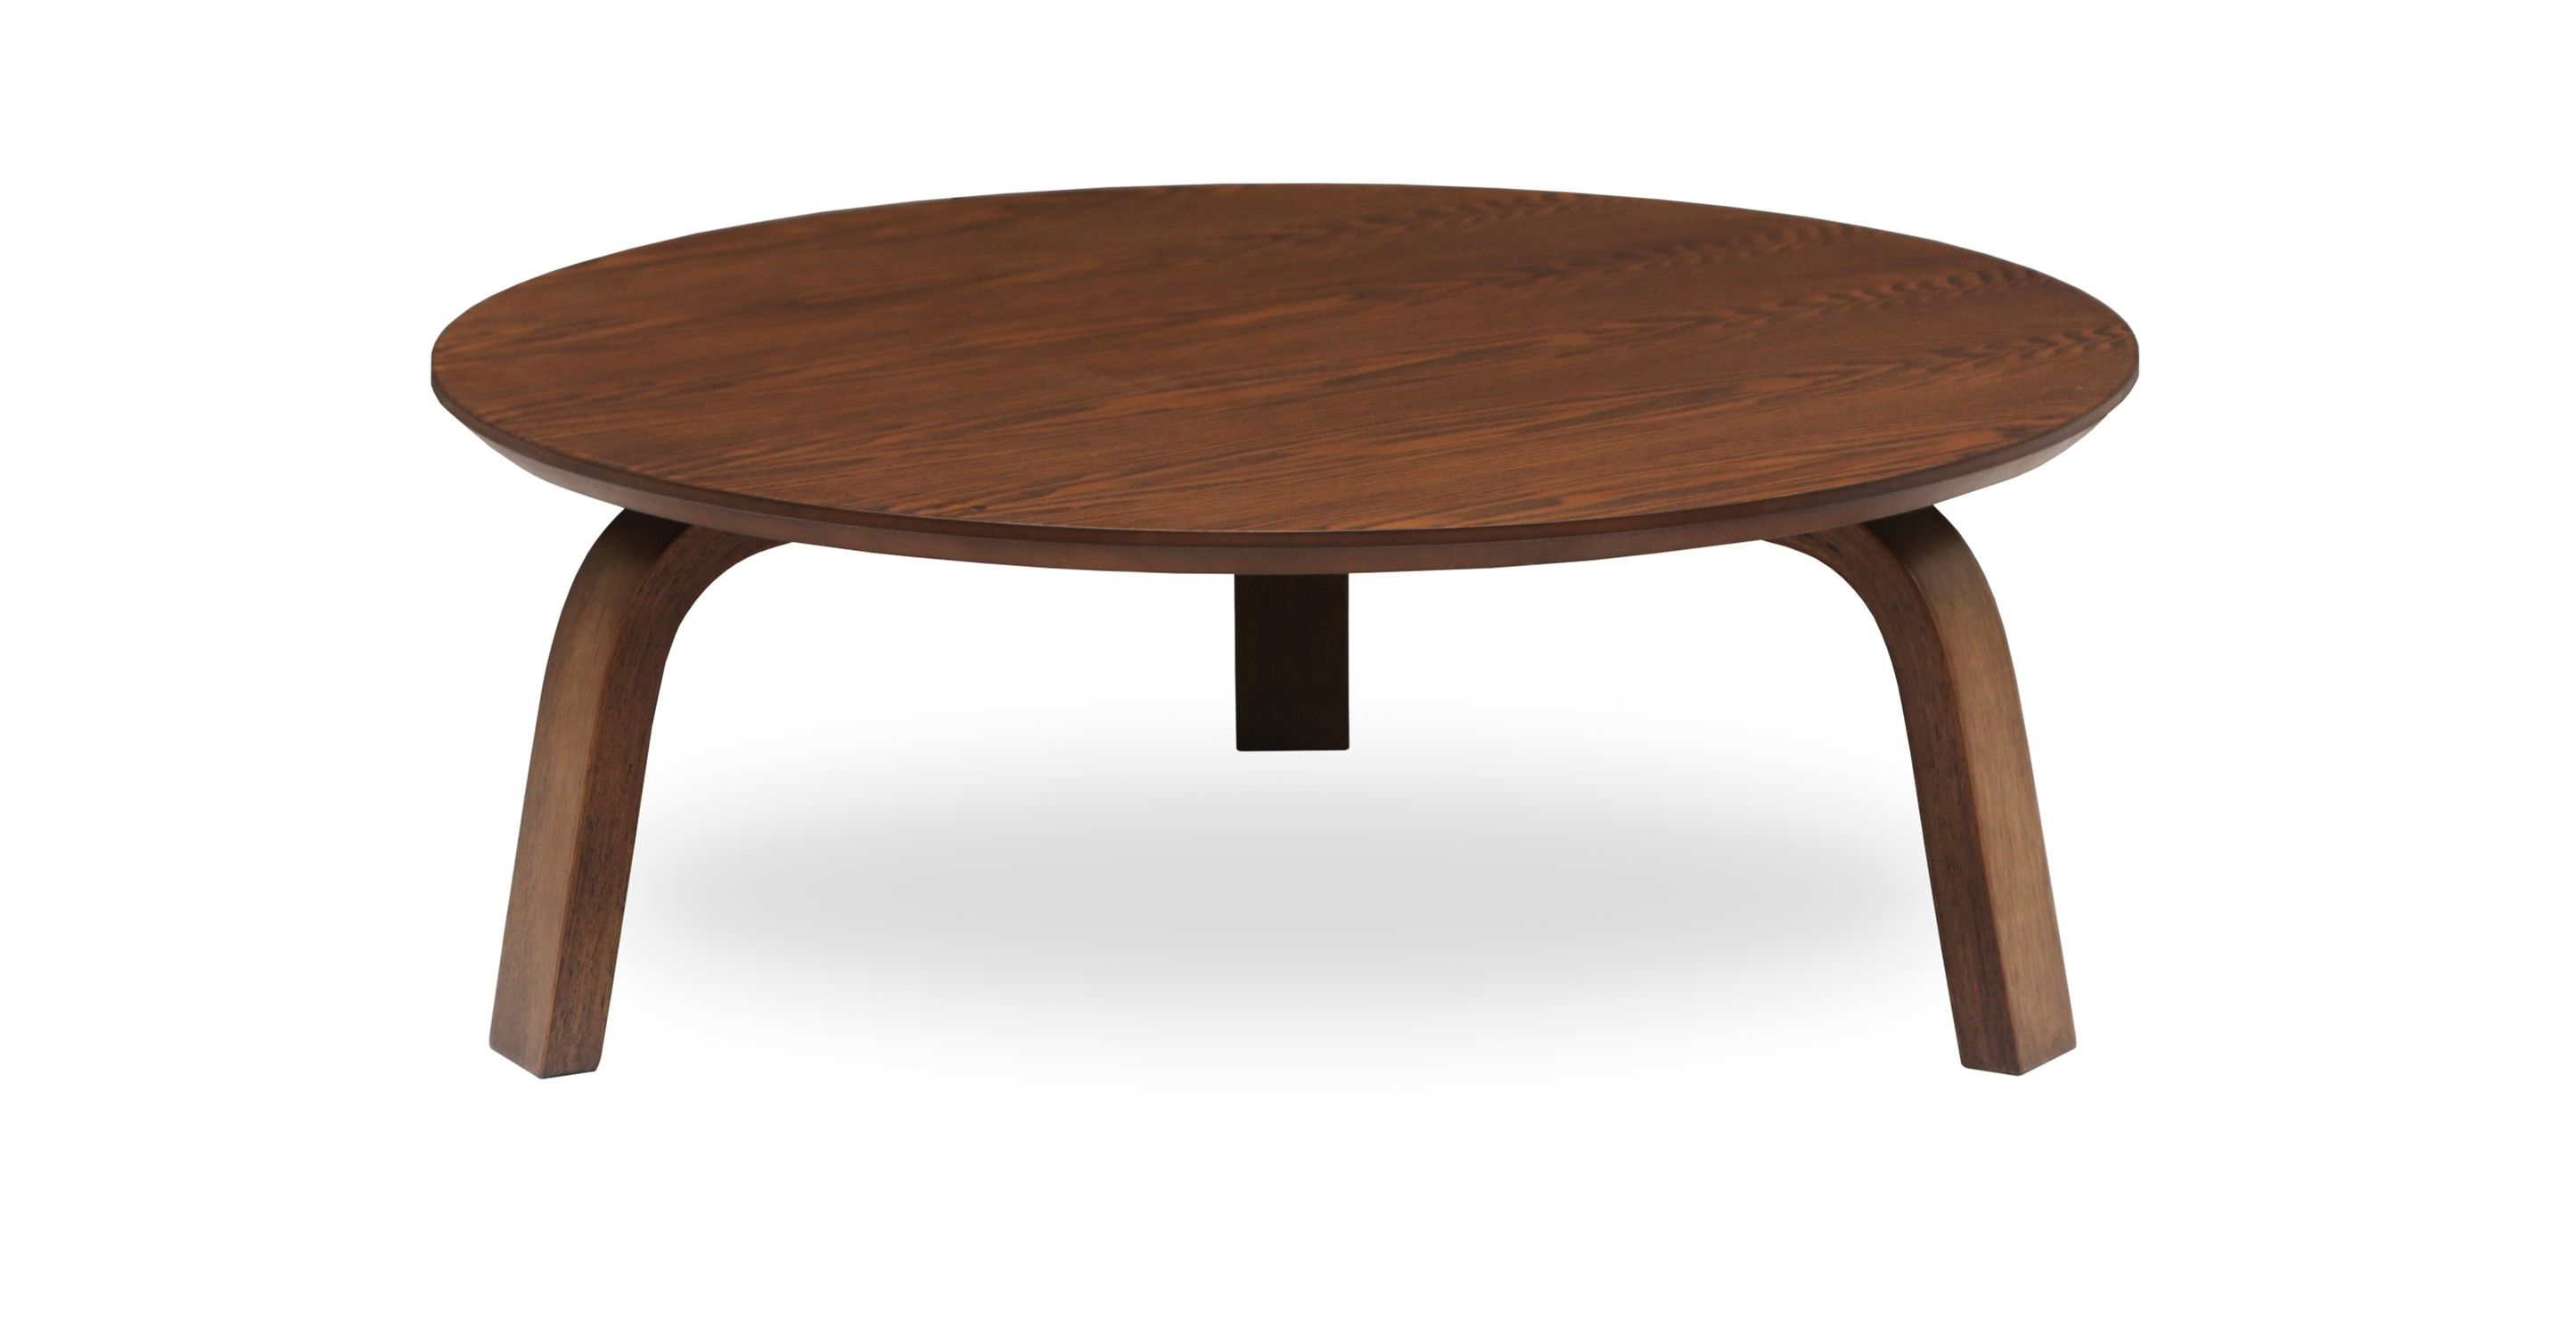 Nes Cocoa Wood Round Coffee Table Coffee Tables Bryght Modern Mid Cent Round Wood Coffee Table Round Wooden Coffee Table Mid Century Modern Coffee Table [ 1500 x 2890 Pixel ]